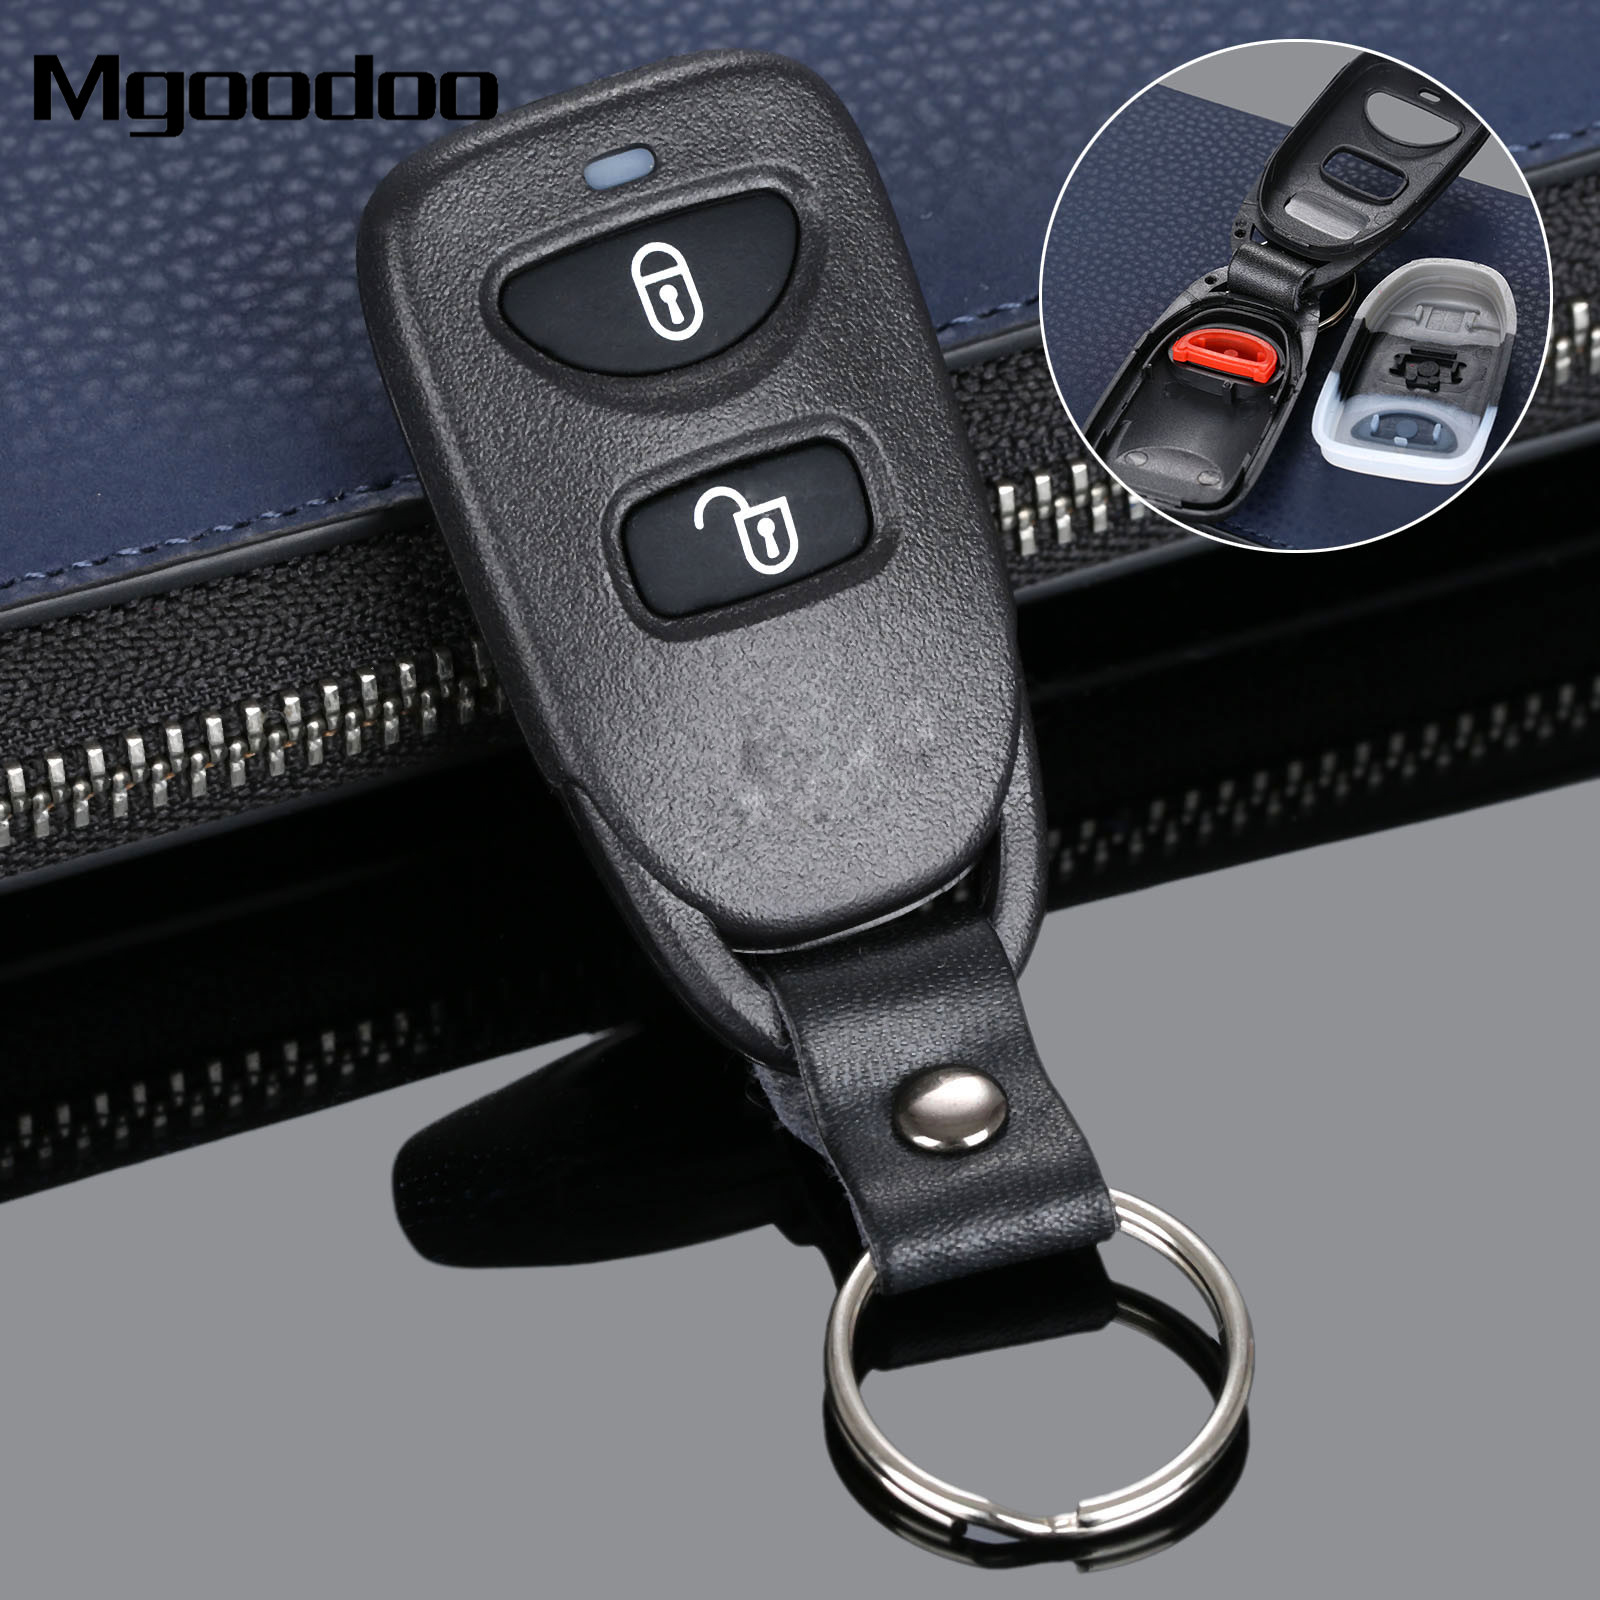 Mgoodoo replacement key case 2 1 buttons smart remote car key shell case fob for